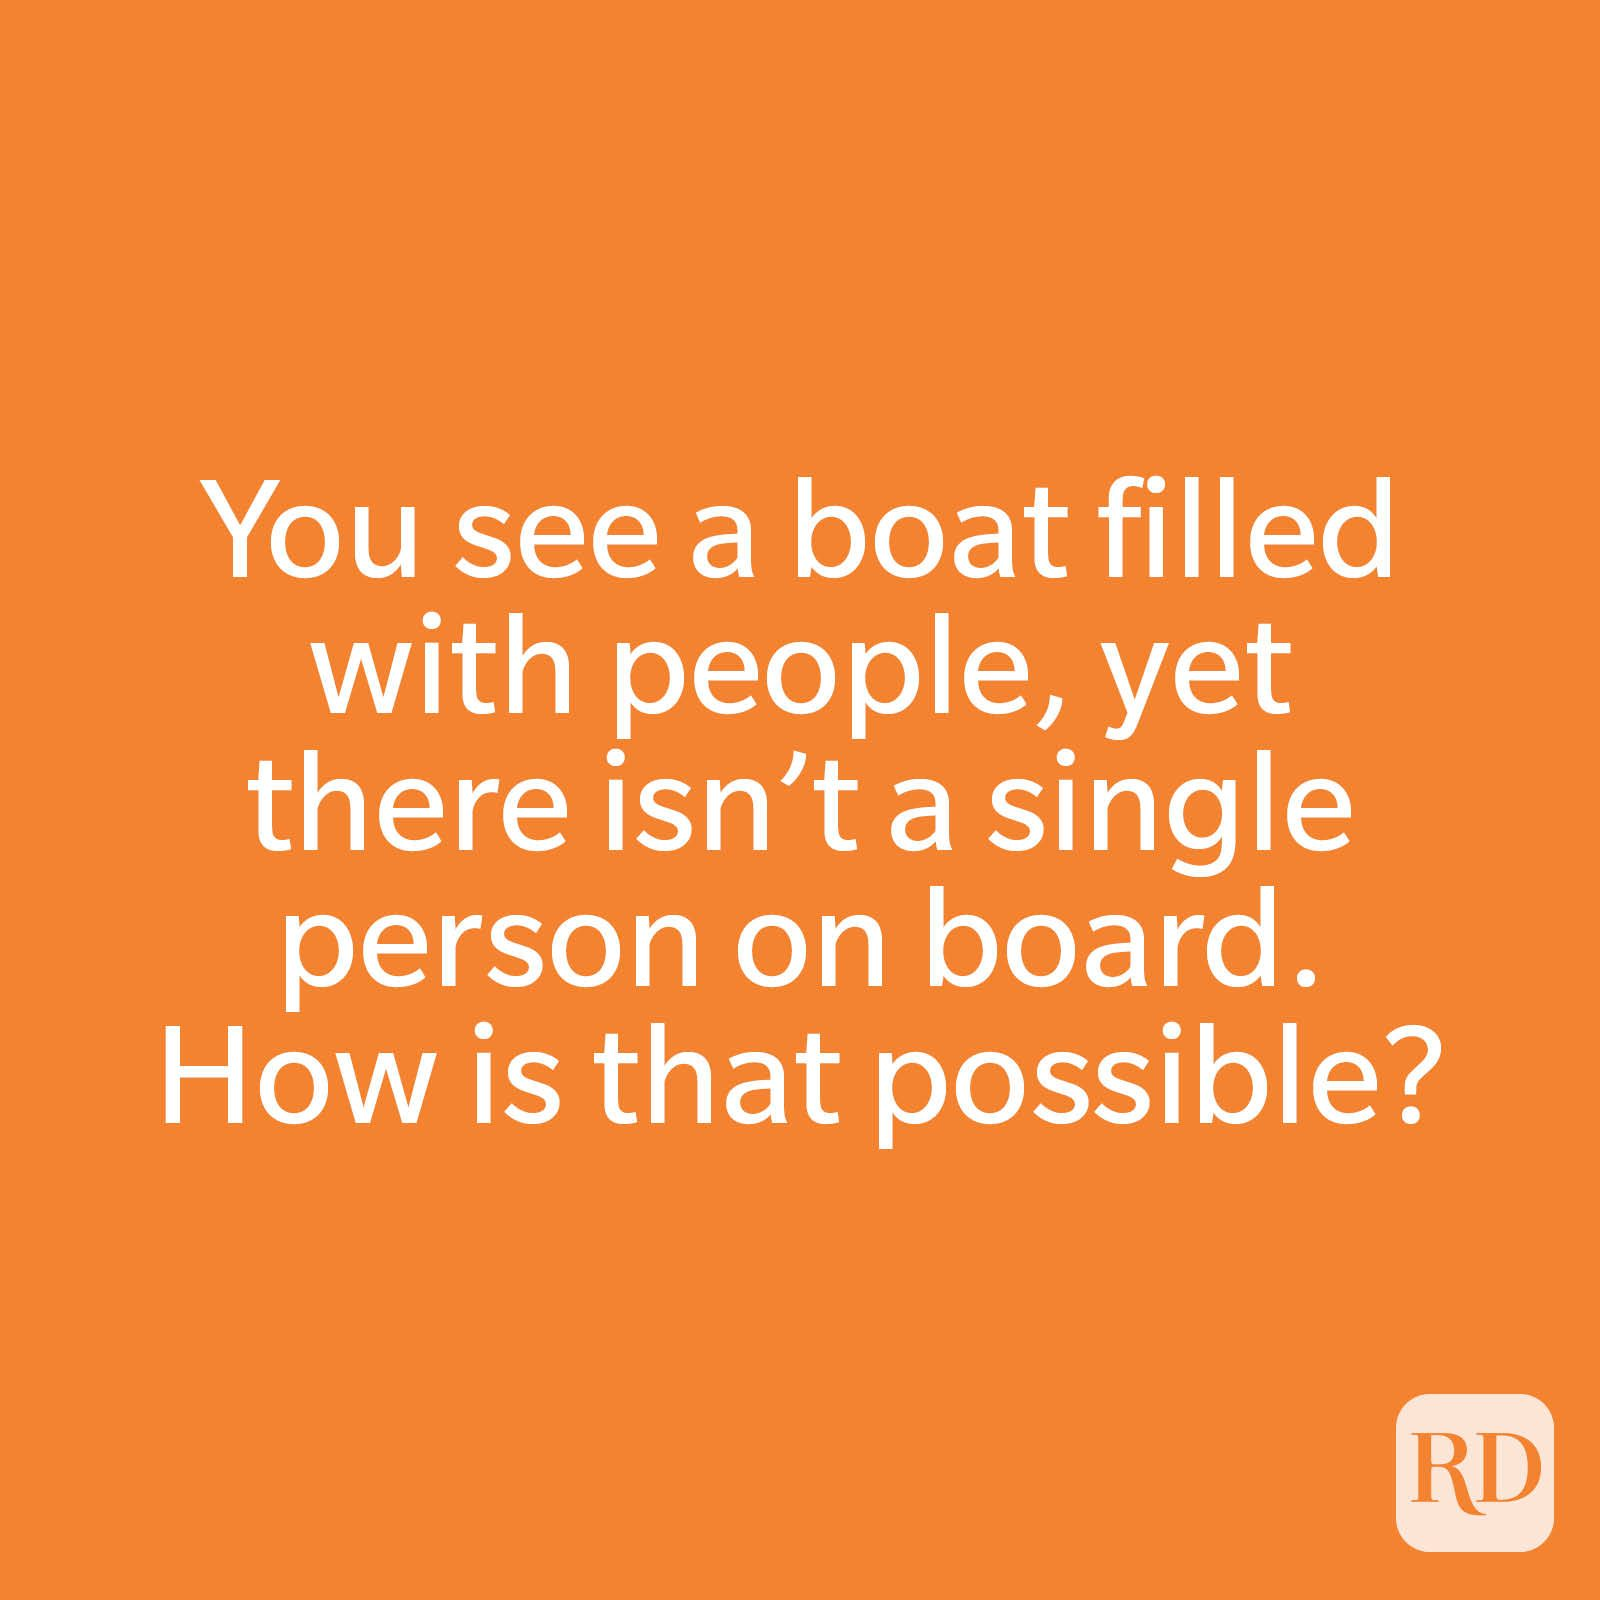 You see a boat filled with people, yet there isn't a single person on board. How is that possible?